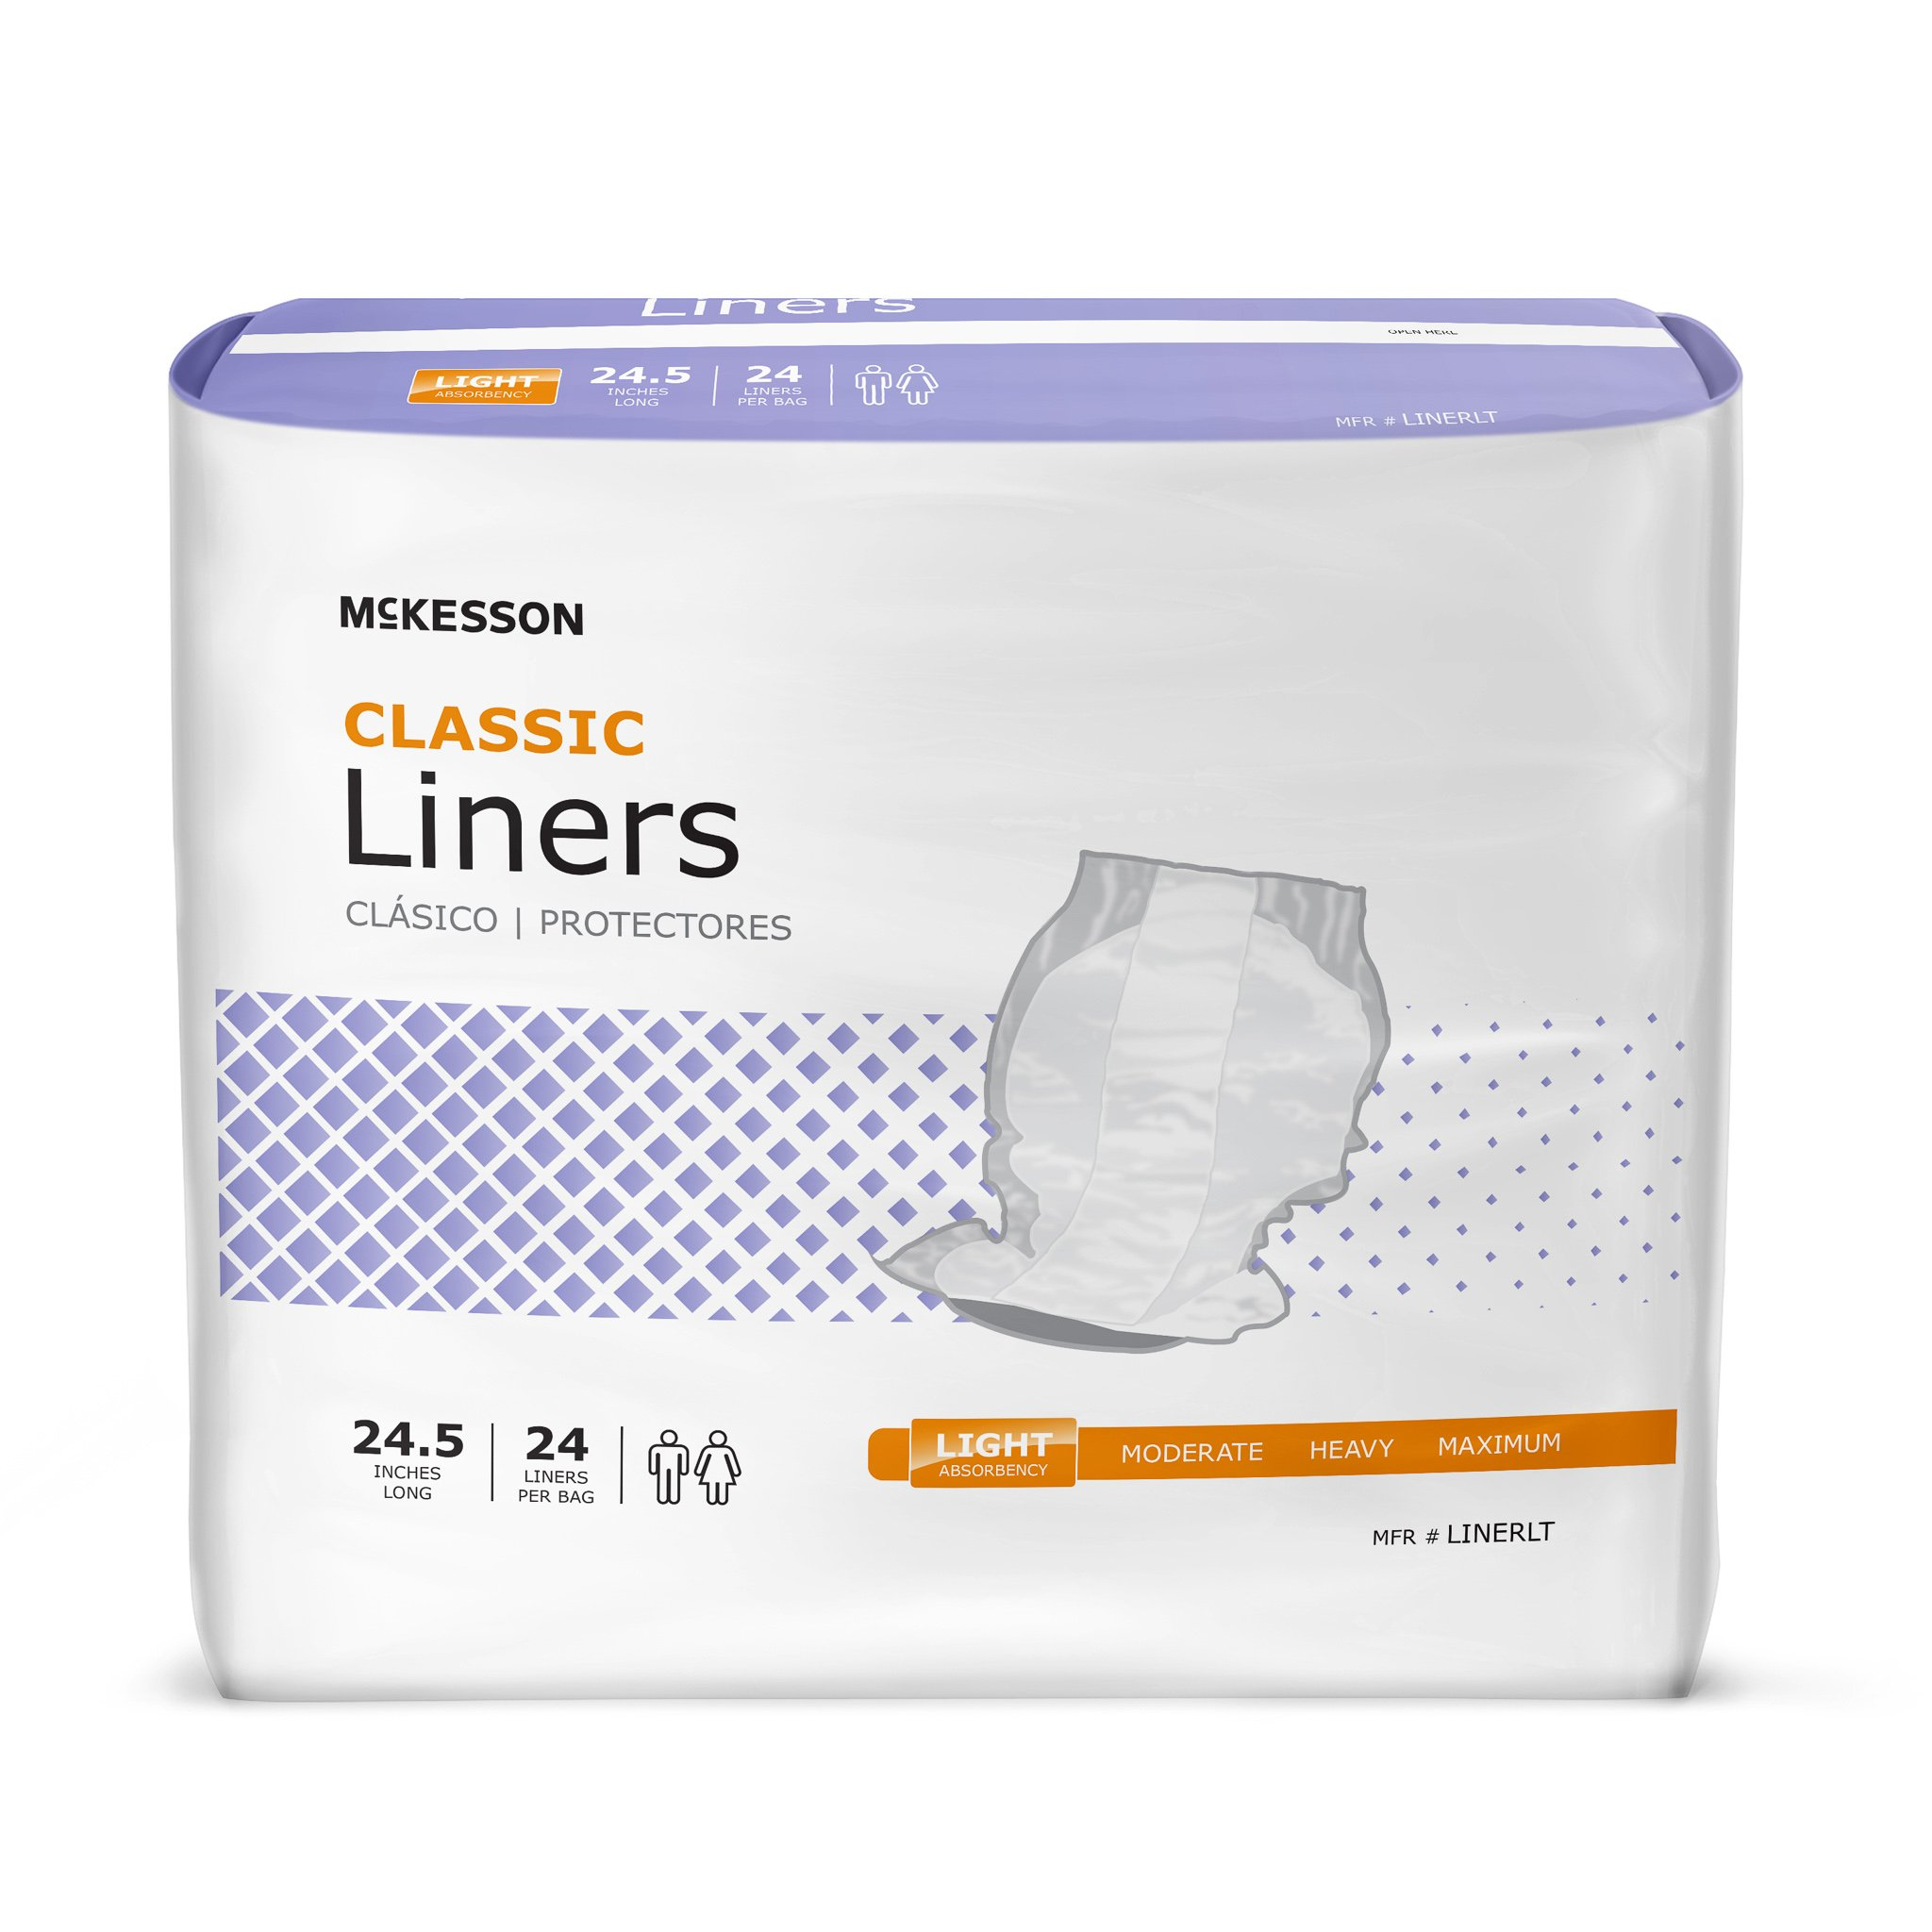 McKesson Classic Disposable Incontinence Liner, Light Absorbency, LINERLT, One Size Fits Most - Bag of 24